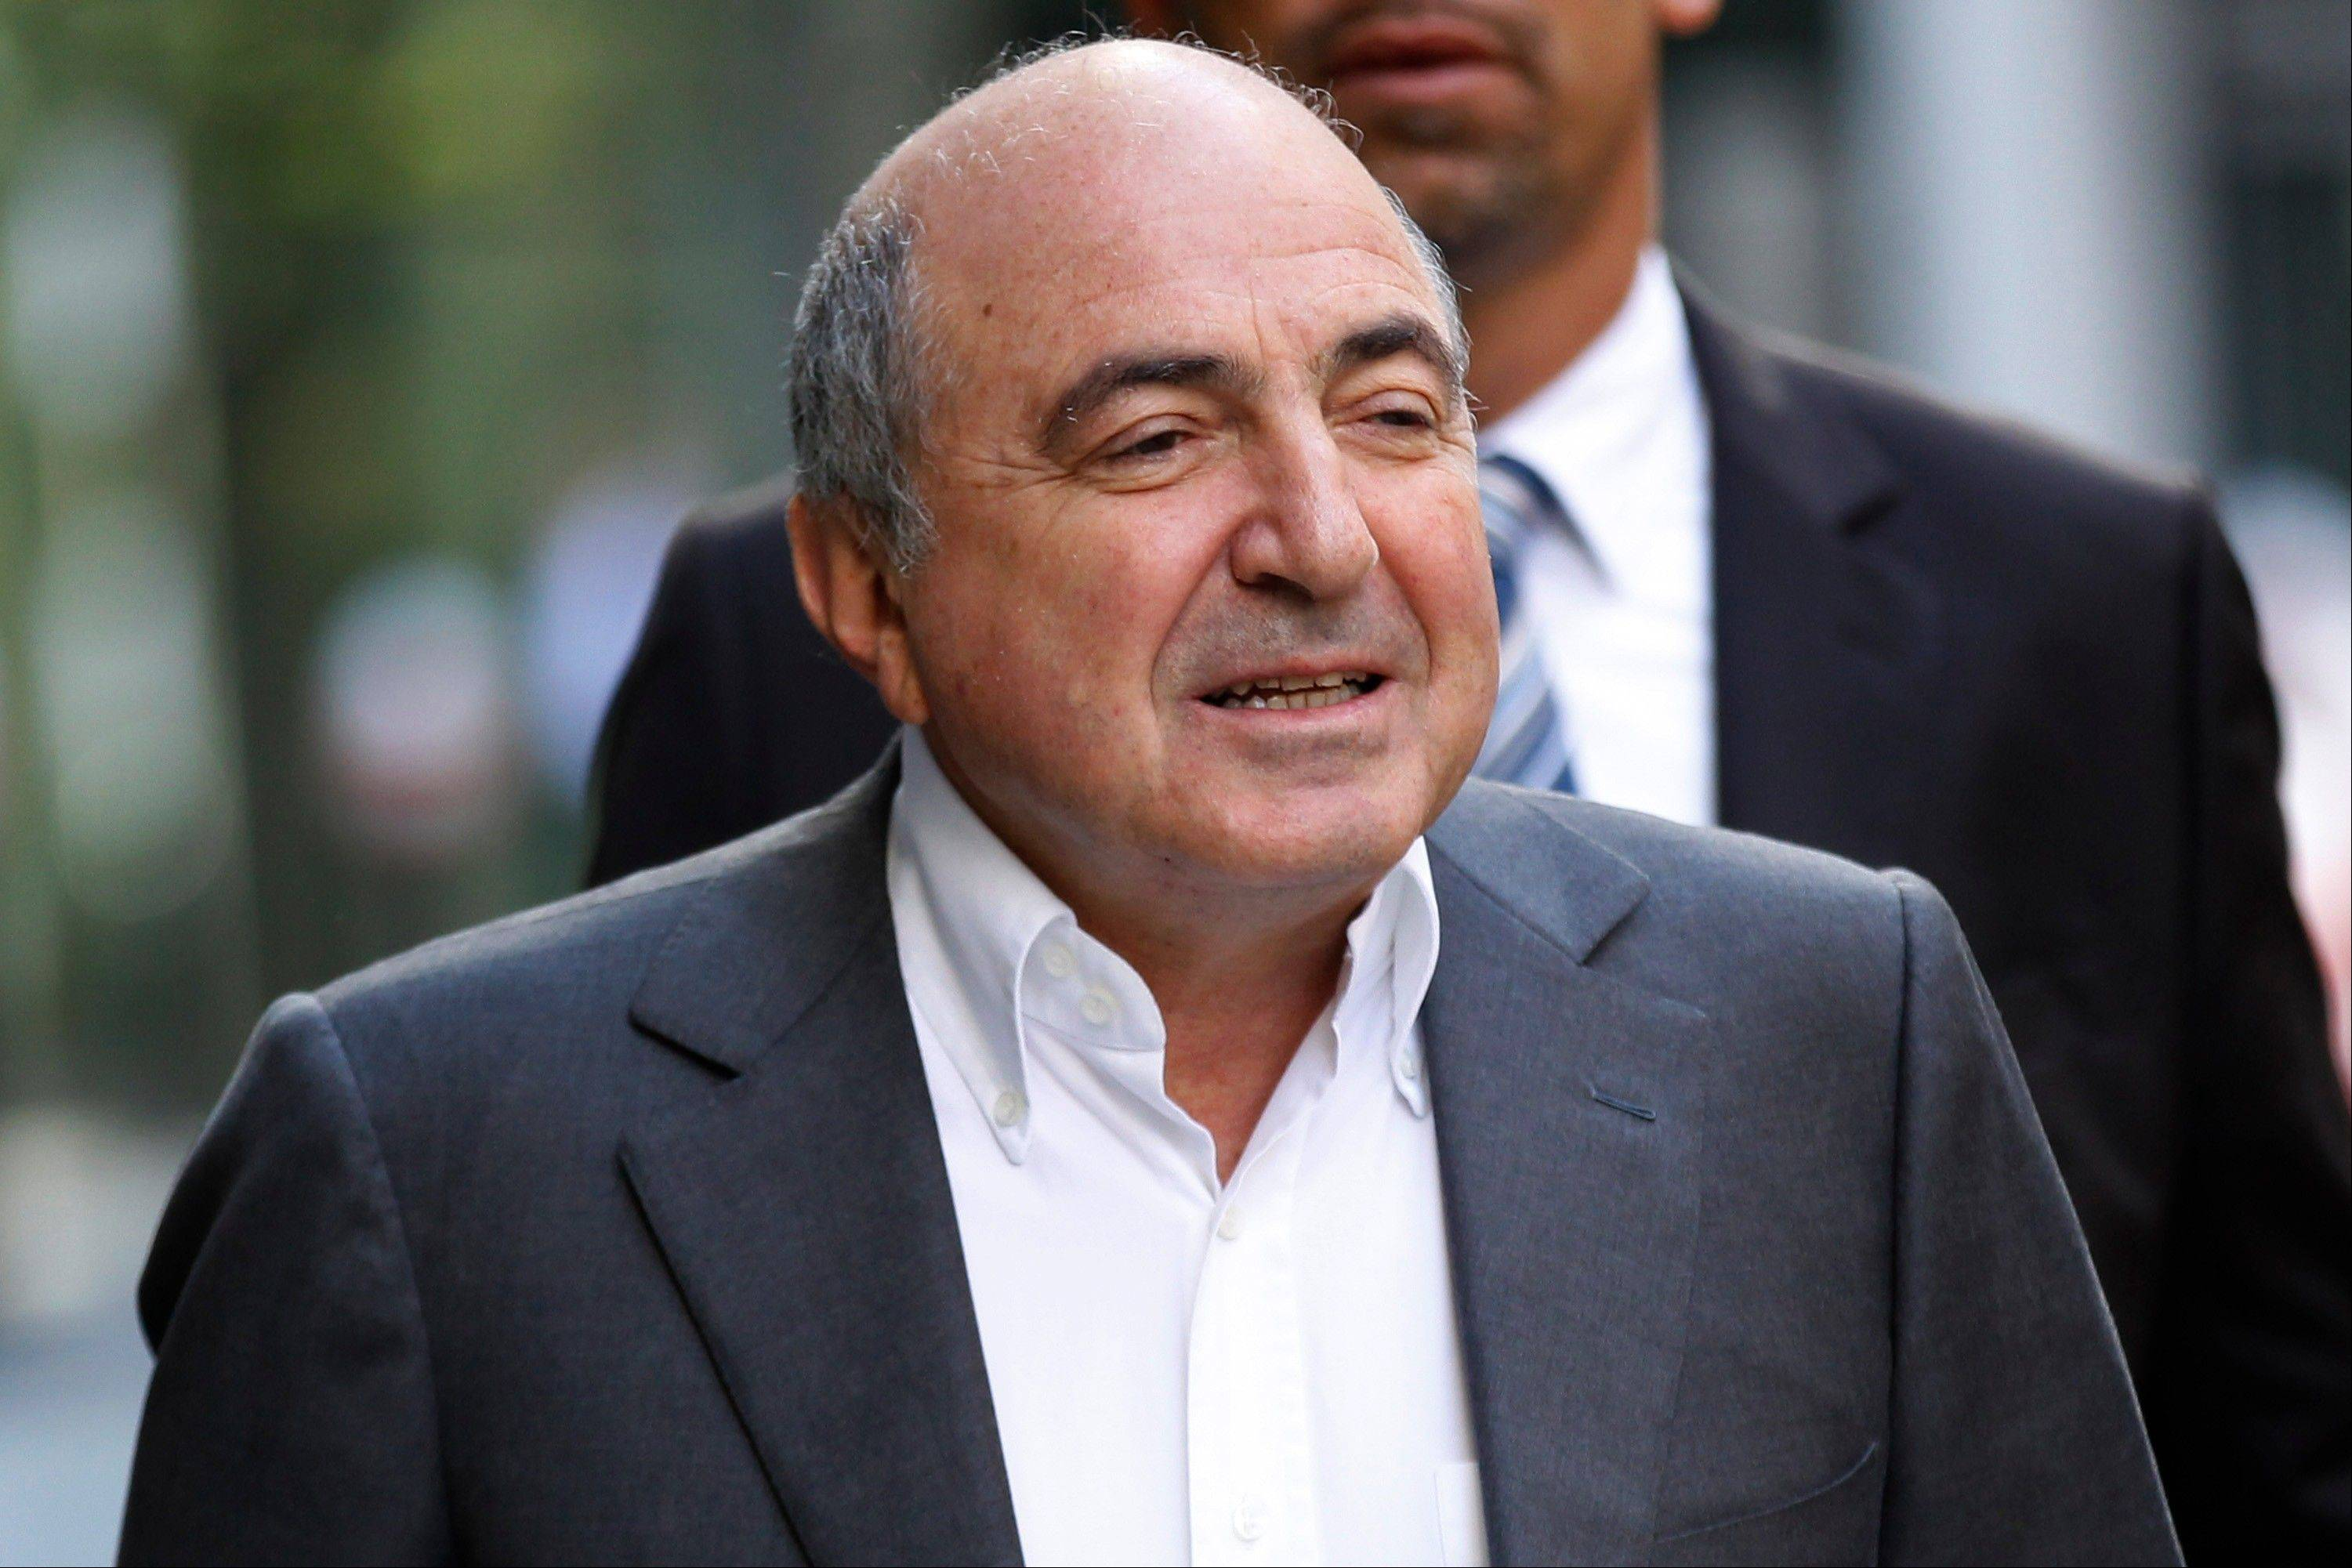 Russian tycoon Boris Berezovsky arrives at the high court in London, Friday, Aug. 31, 2012. Berezovsky lost a High Court battle against Roman Abramovich in a multibillion-dollar legal battle waged between the two Russian tycoons in a London courtroom.